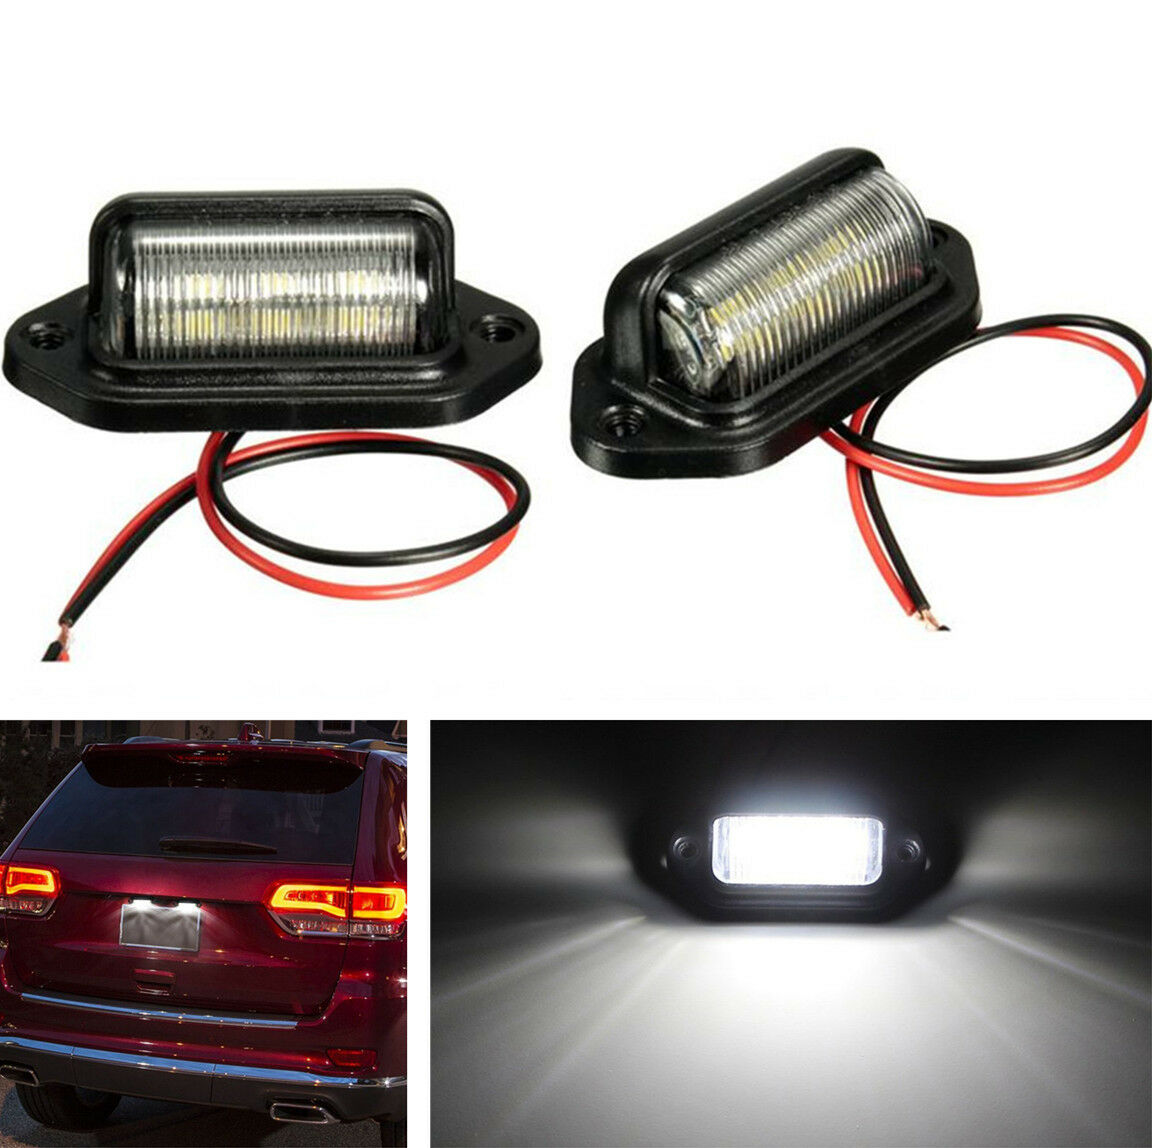 2pcs 12v Car Truck License Plate White Led Light Lamp 6000k Leds On For Cars And Trucks Waterproof Universal 1 Of 12free Shipping